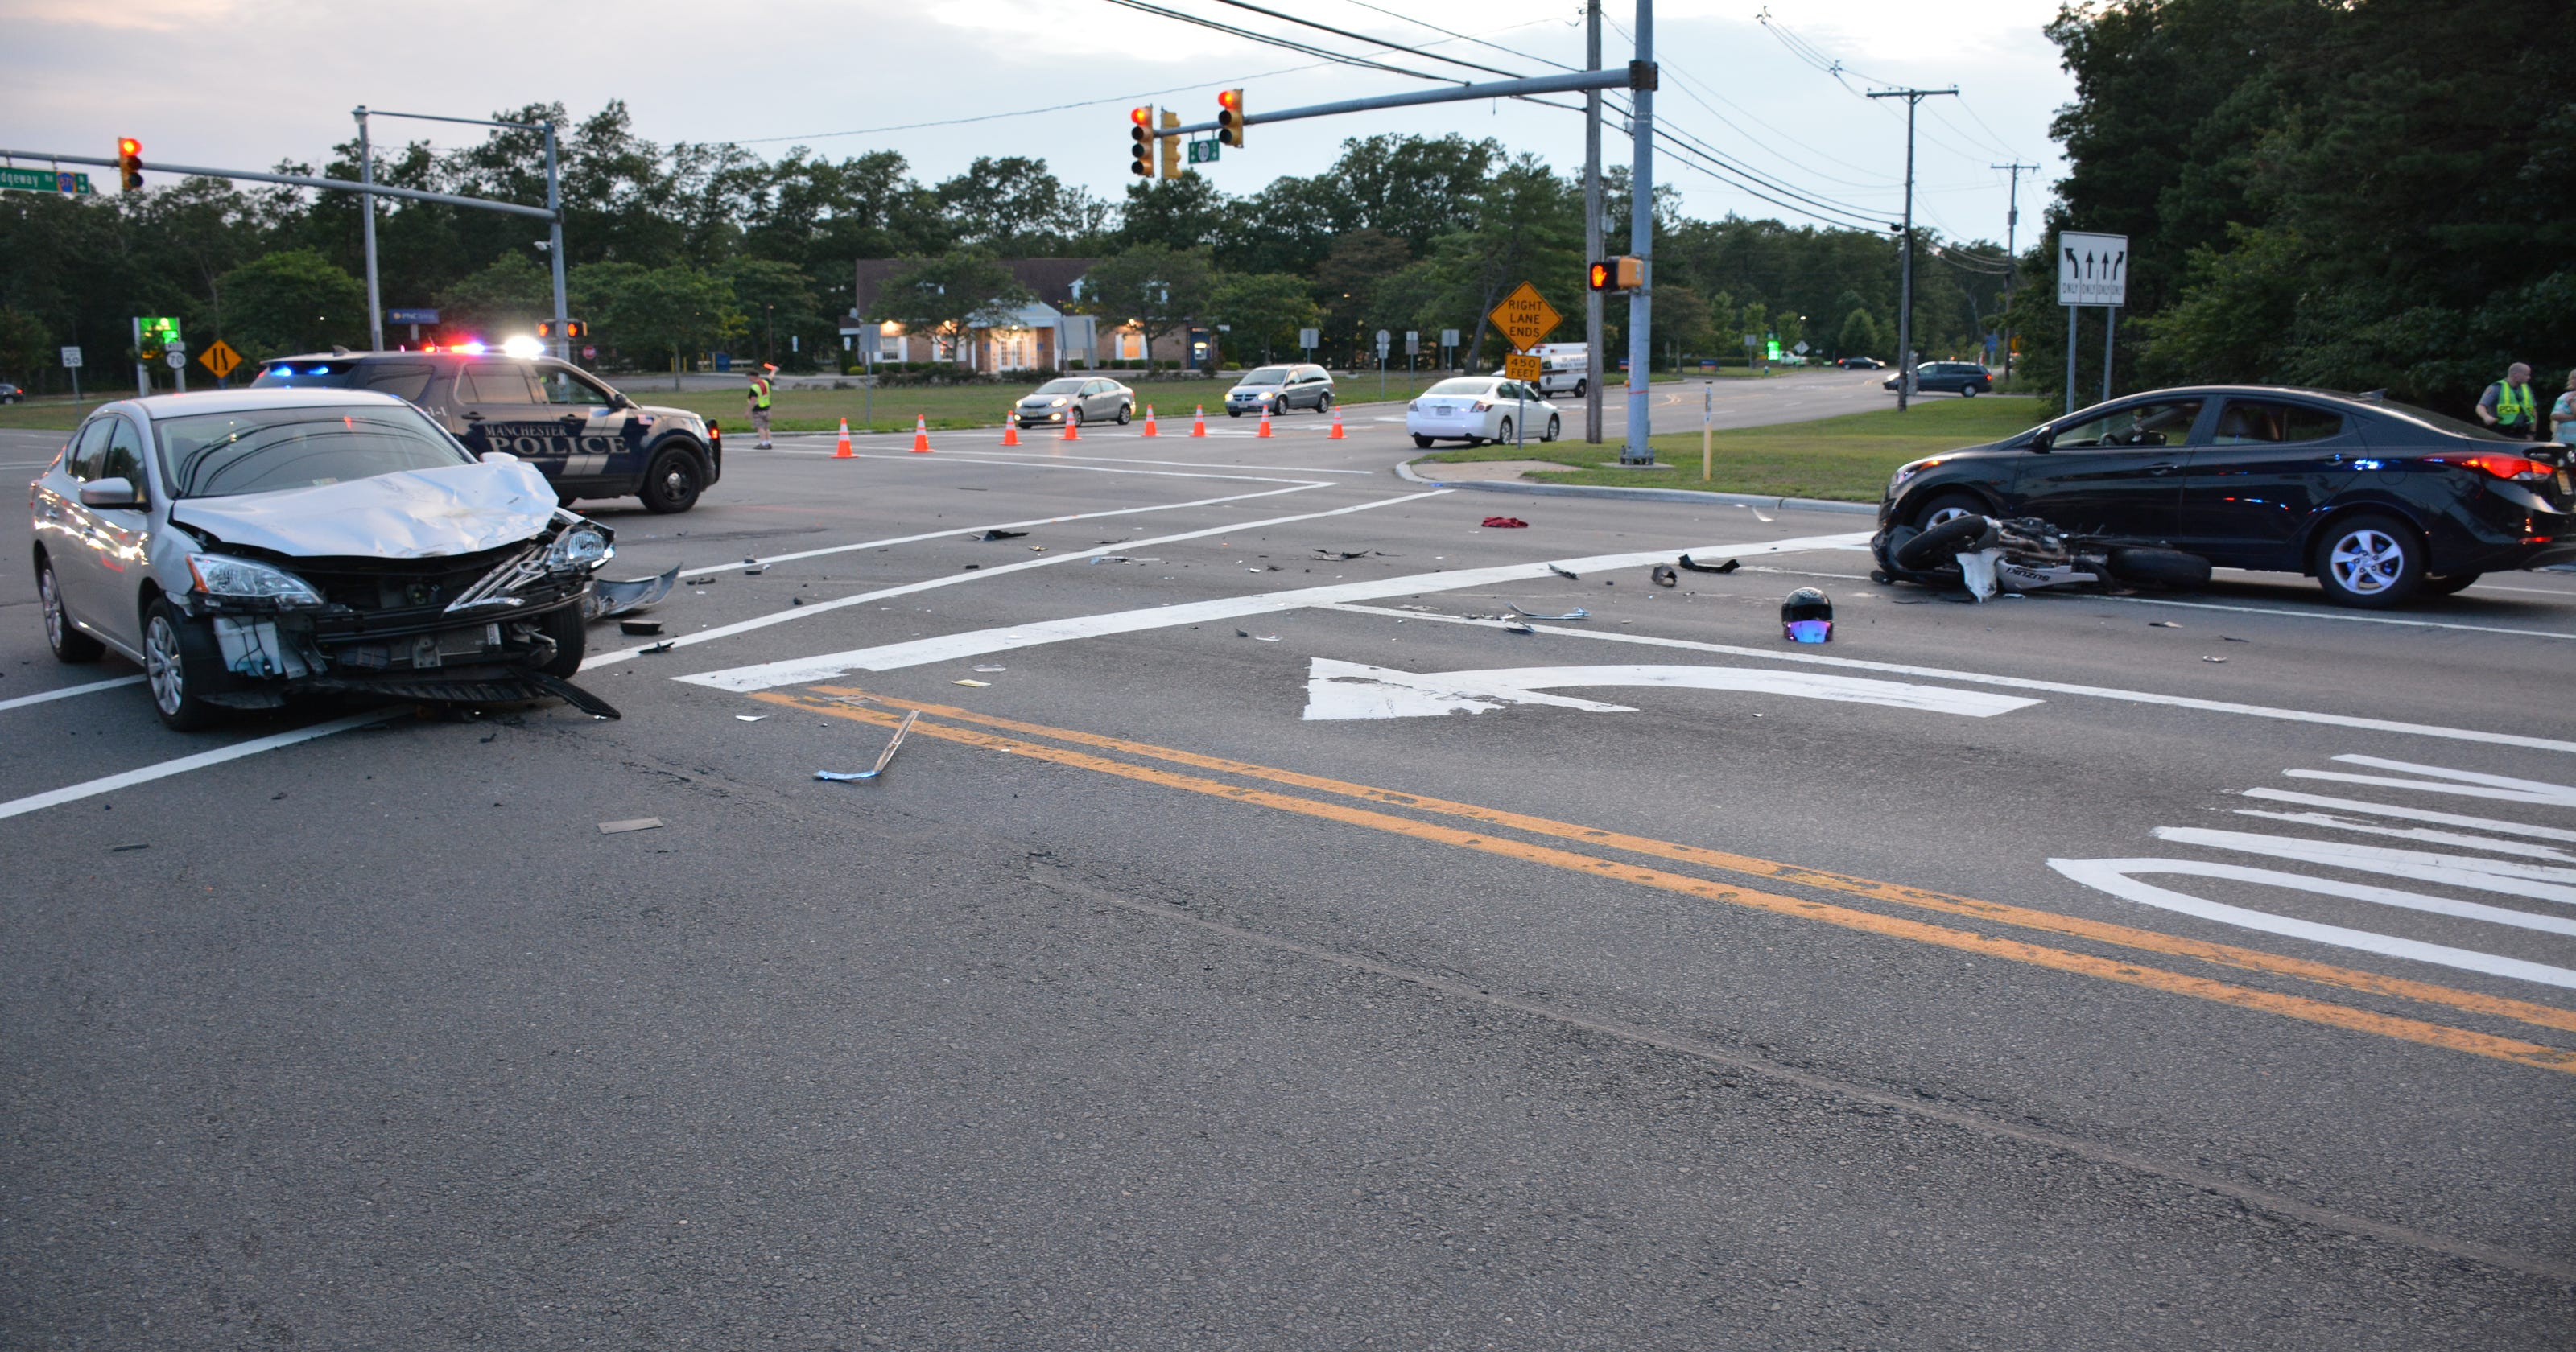 Cops: 2 motorcycle riders flown to hospital after crash